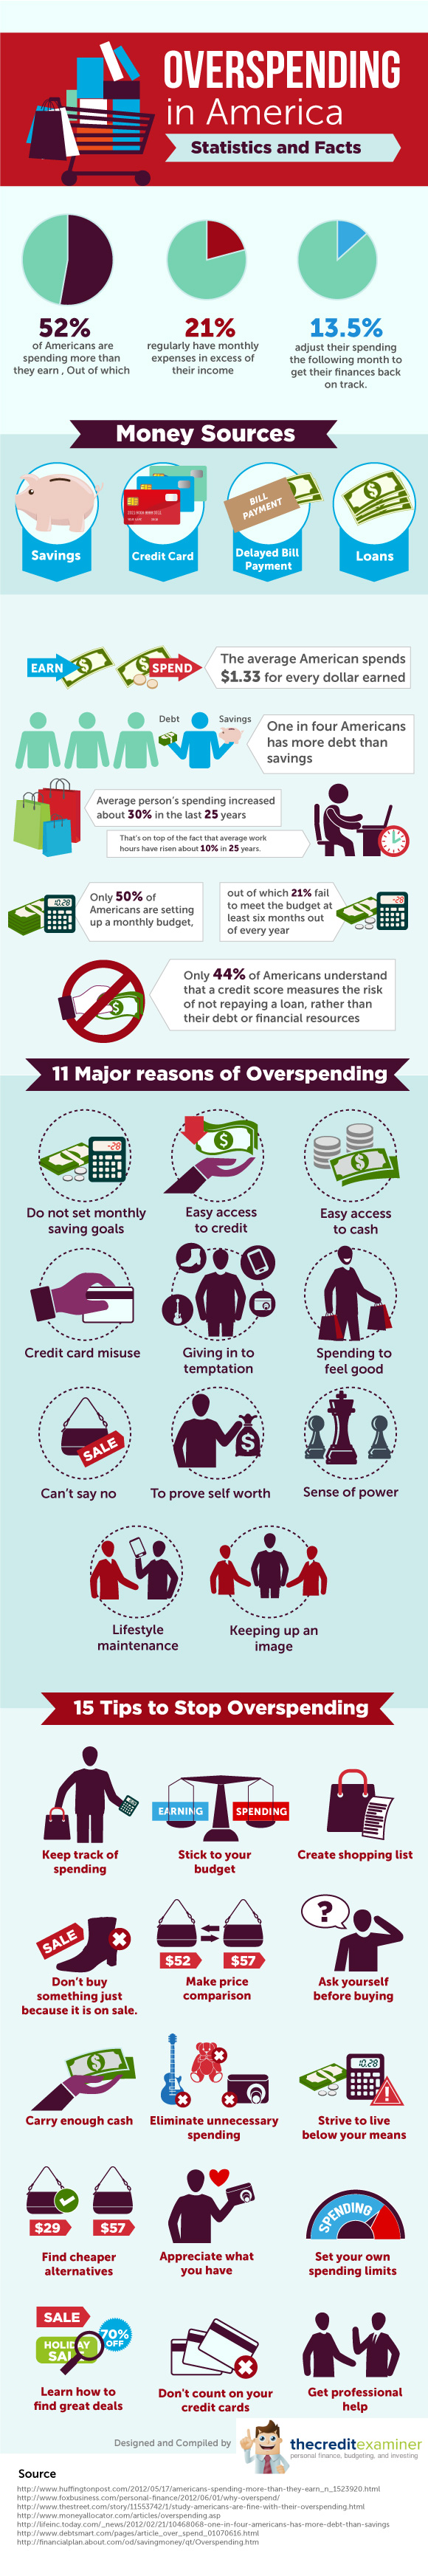 overspending-in-america--statistics-and-facts_50e017b1d43e7